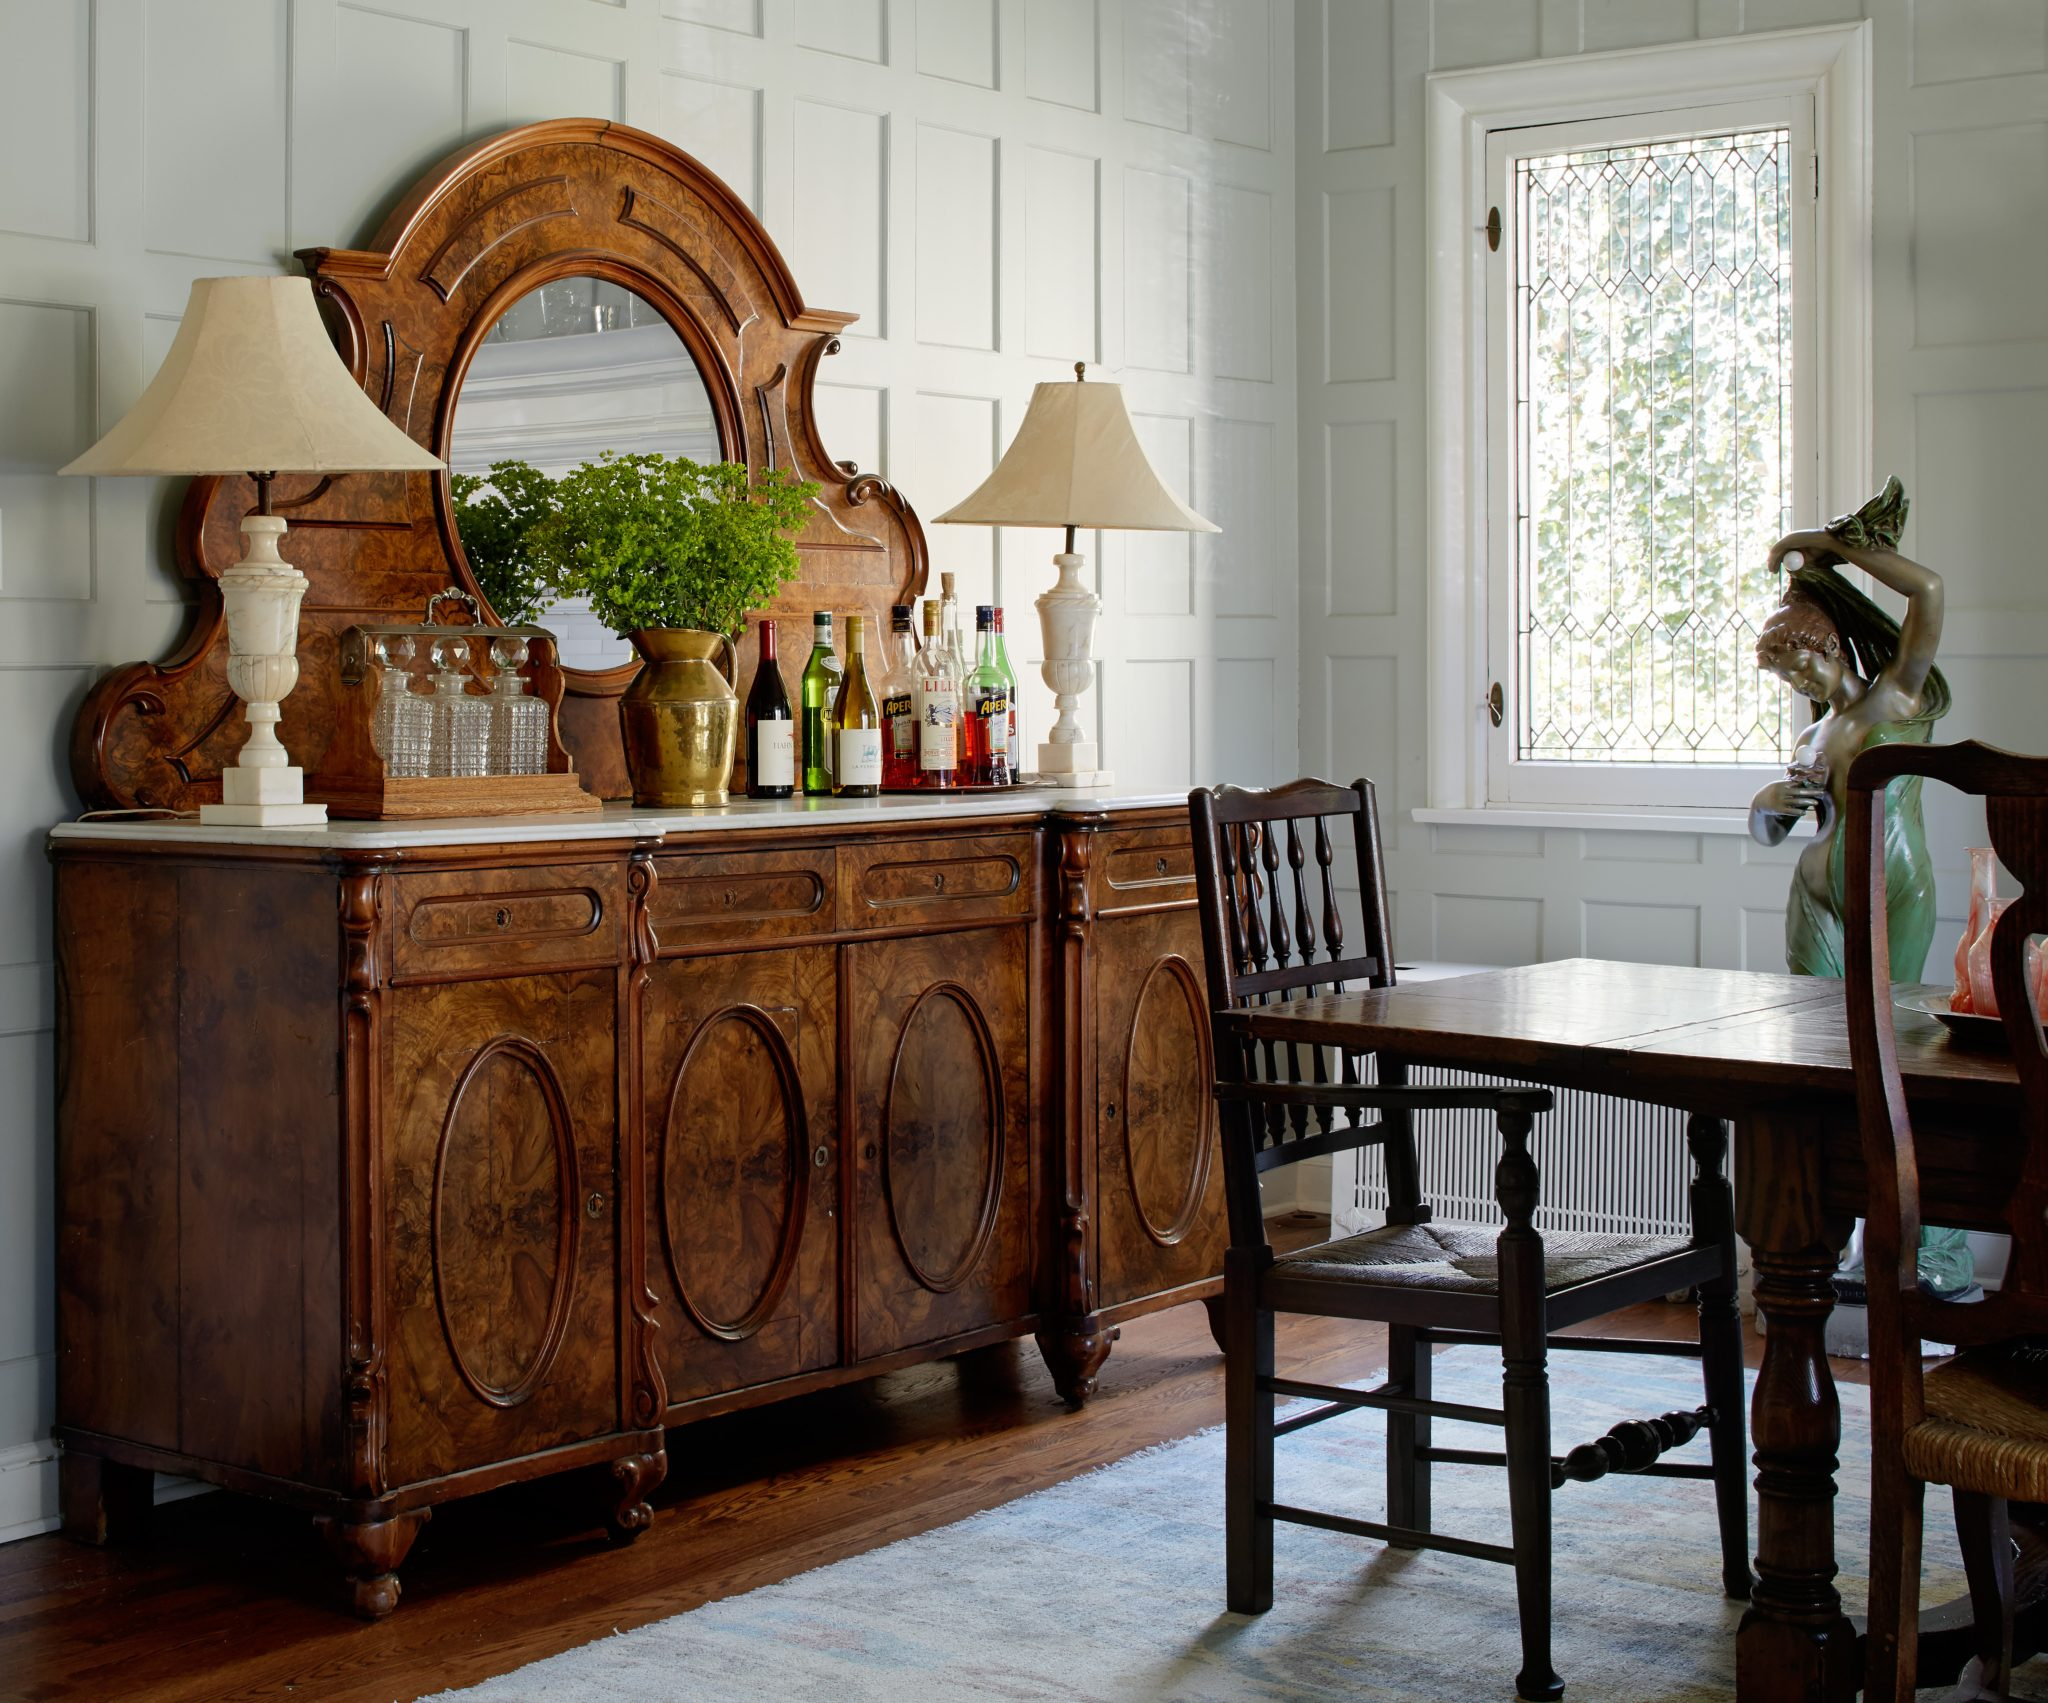 Sheridan Road Dining Room with Gray Paneled Walls and Burled Wood Bar by 2to5 Design